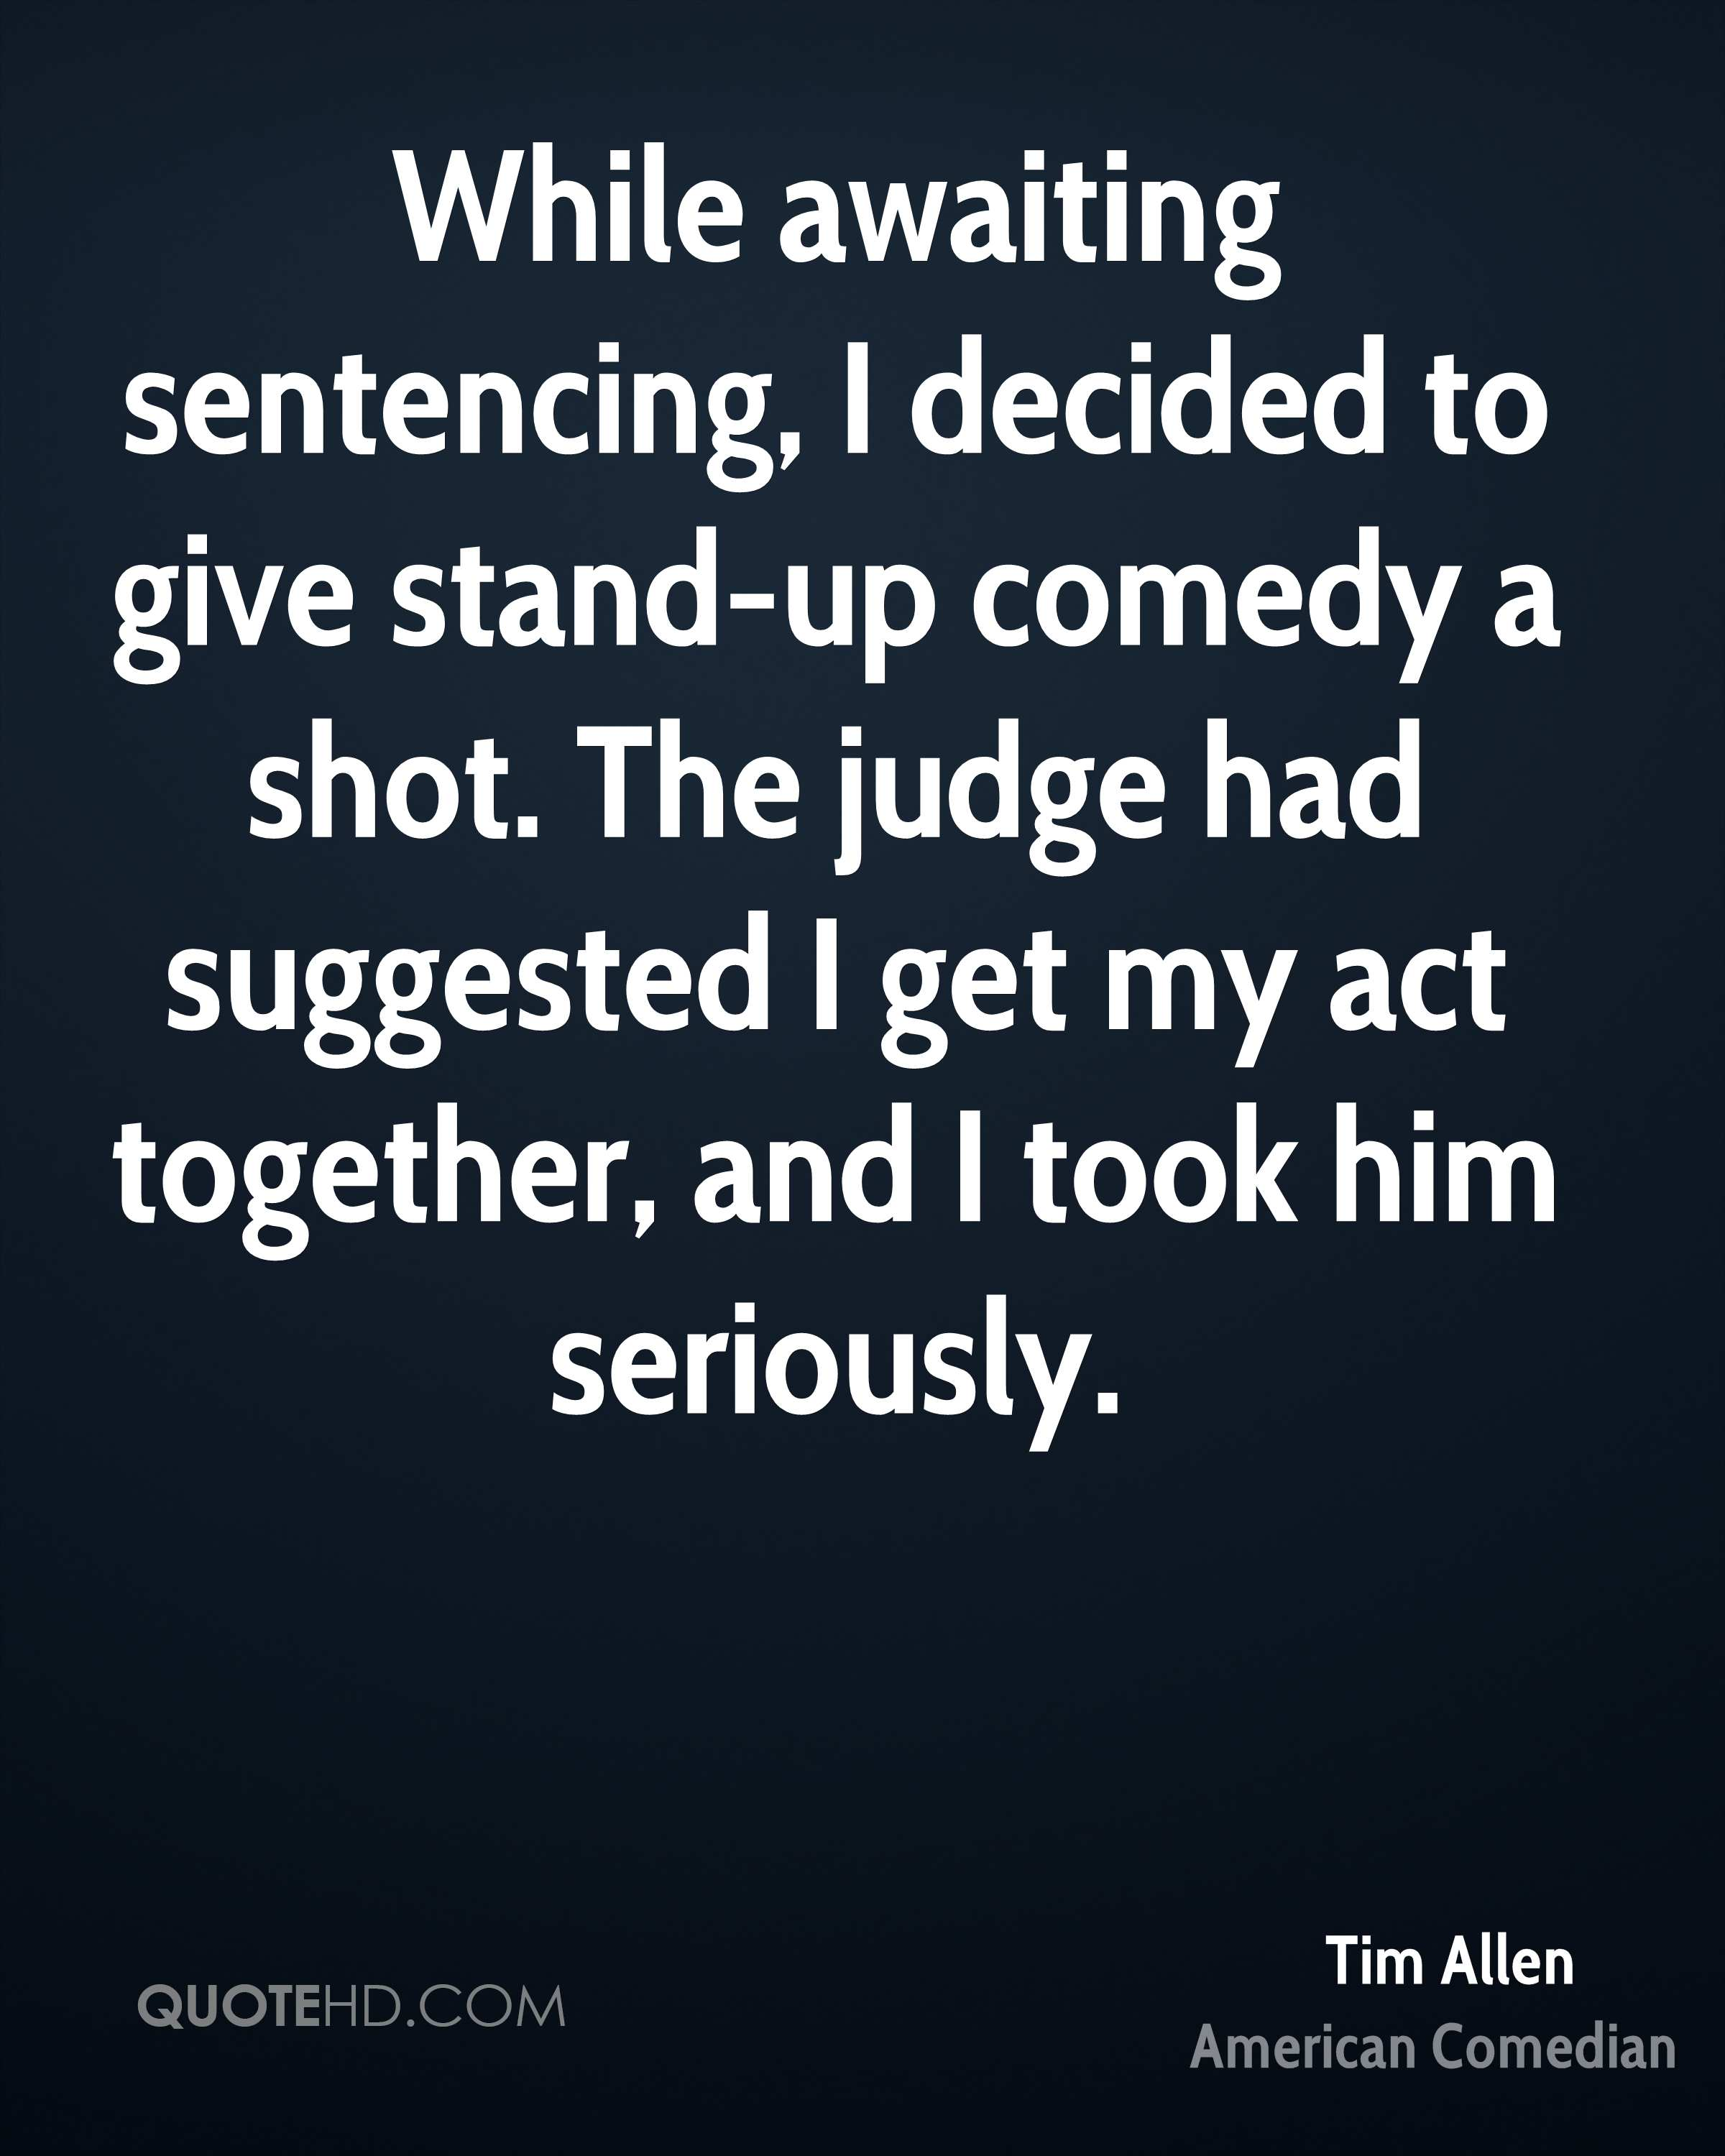 While awaiting sentencing, I decided to give stand-up comedy a shot. The judge had suggested I get my act together, and I took him seriously.